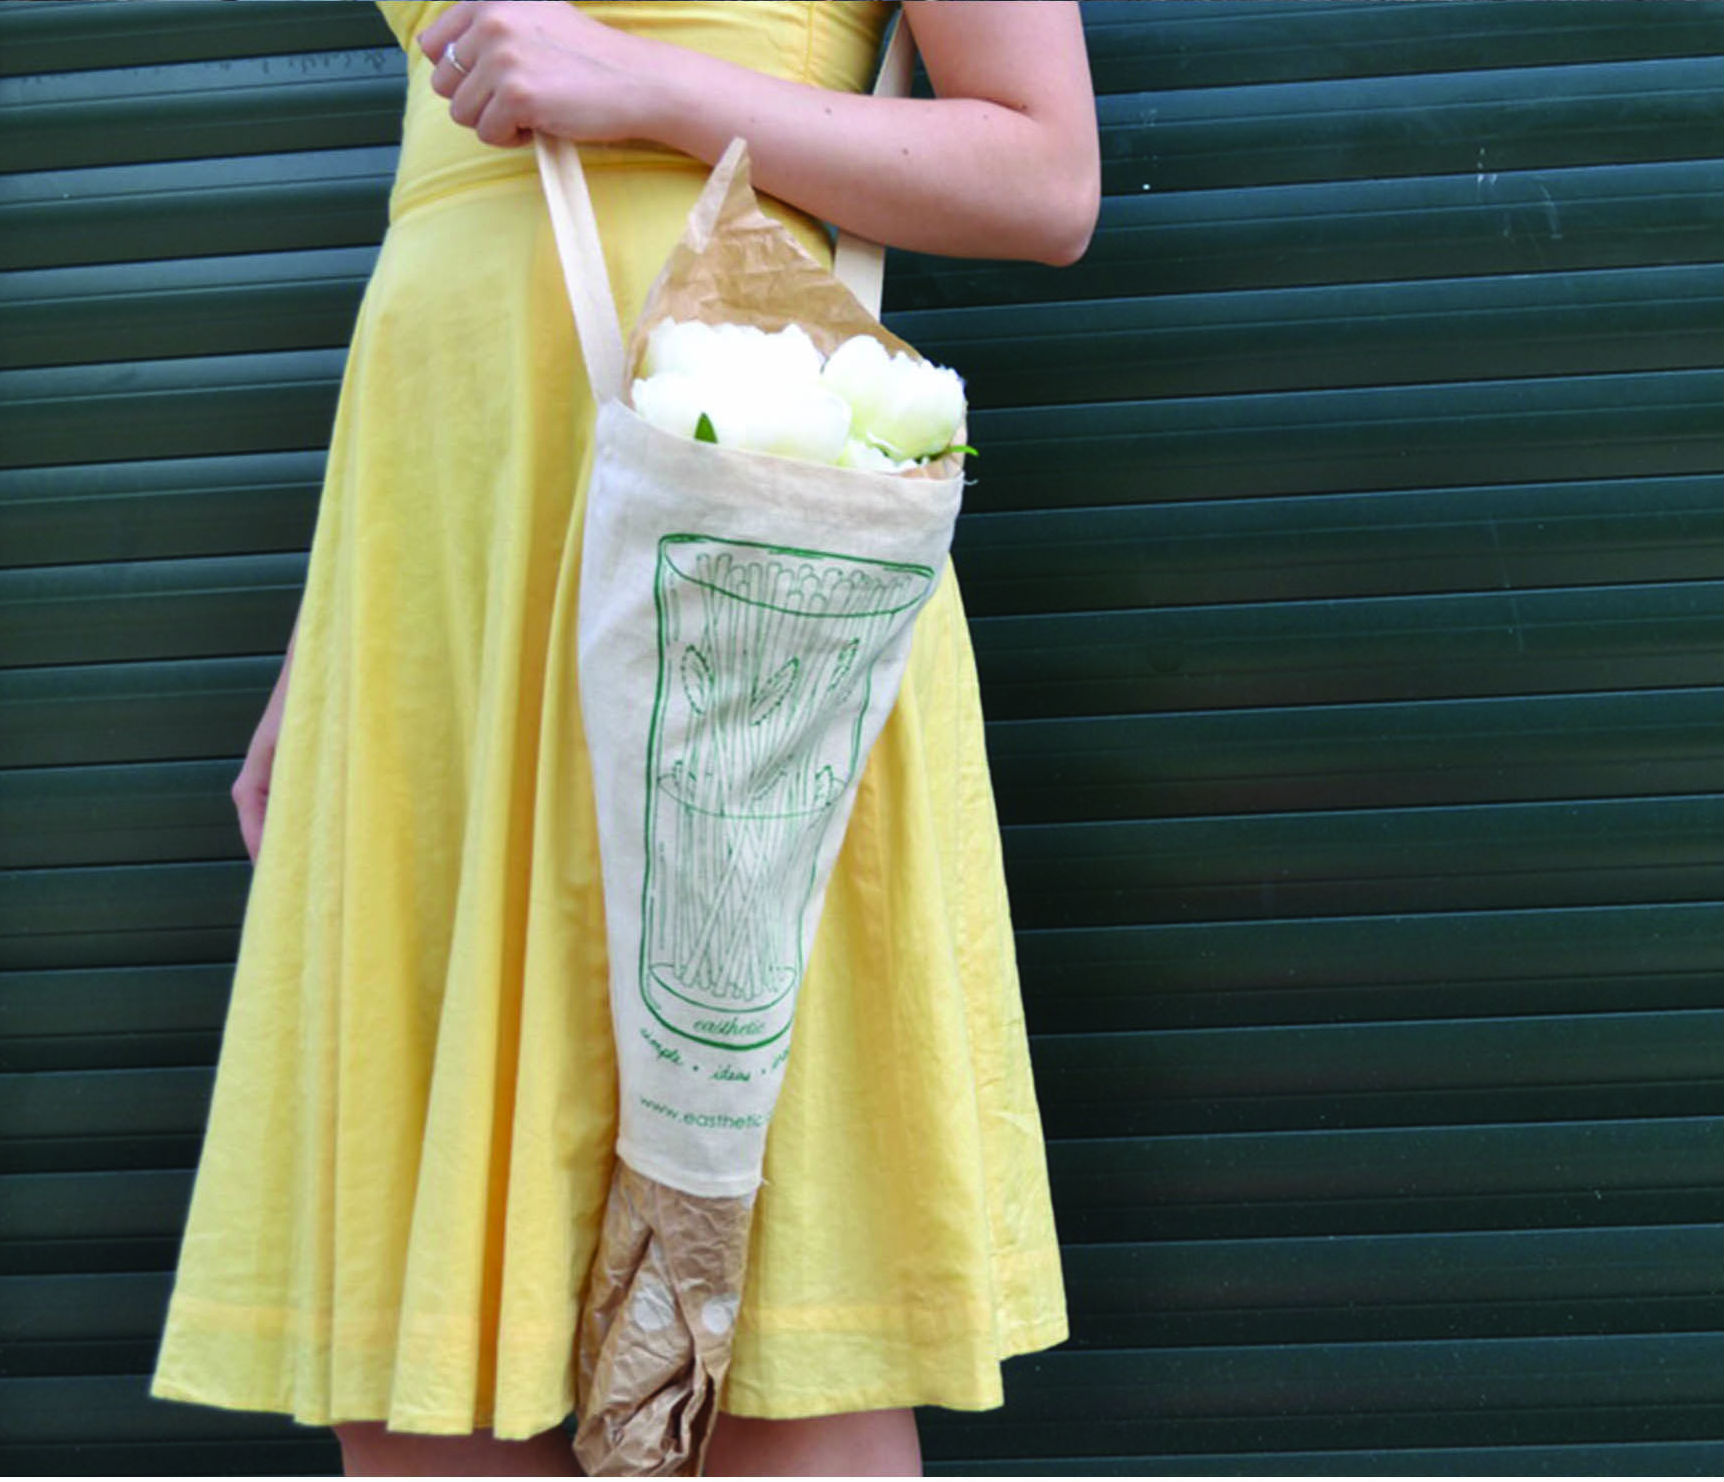 The Pozzy an eco friendly flower carrier